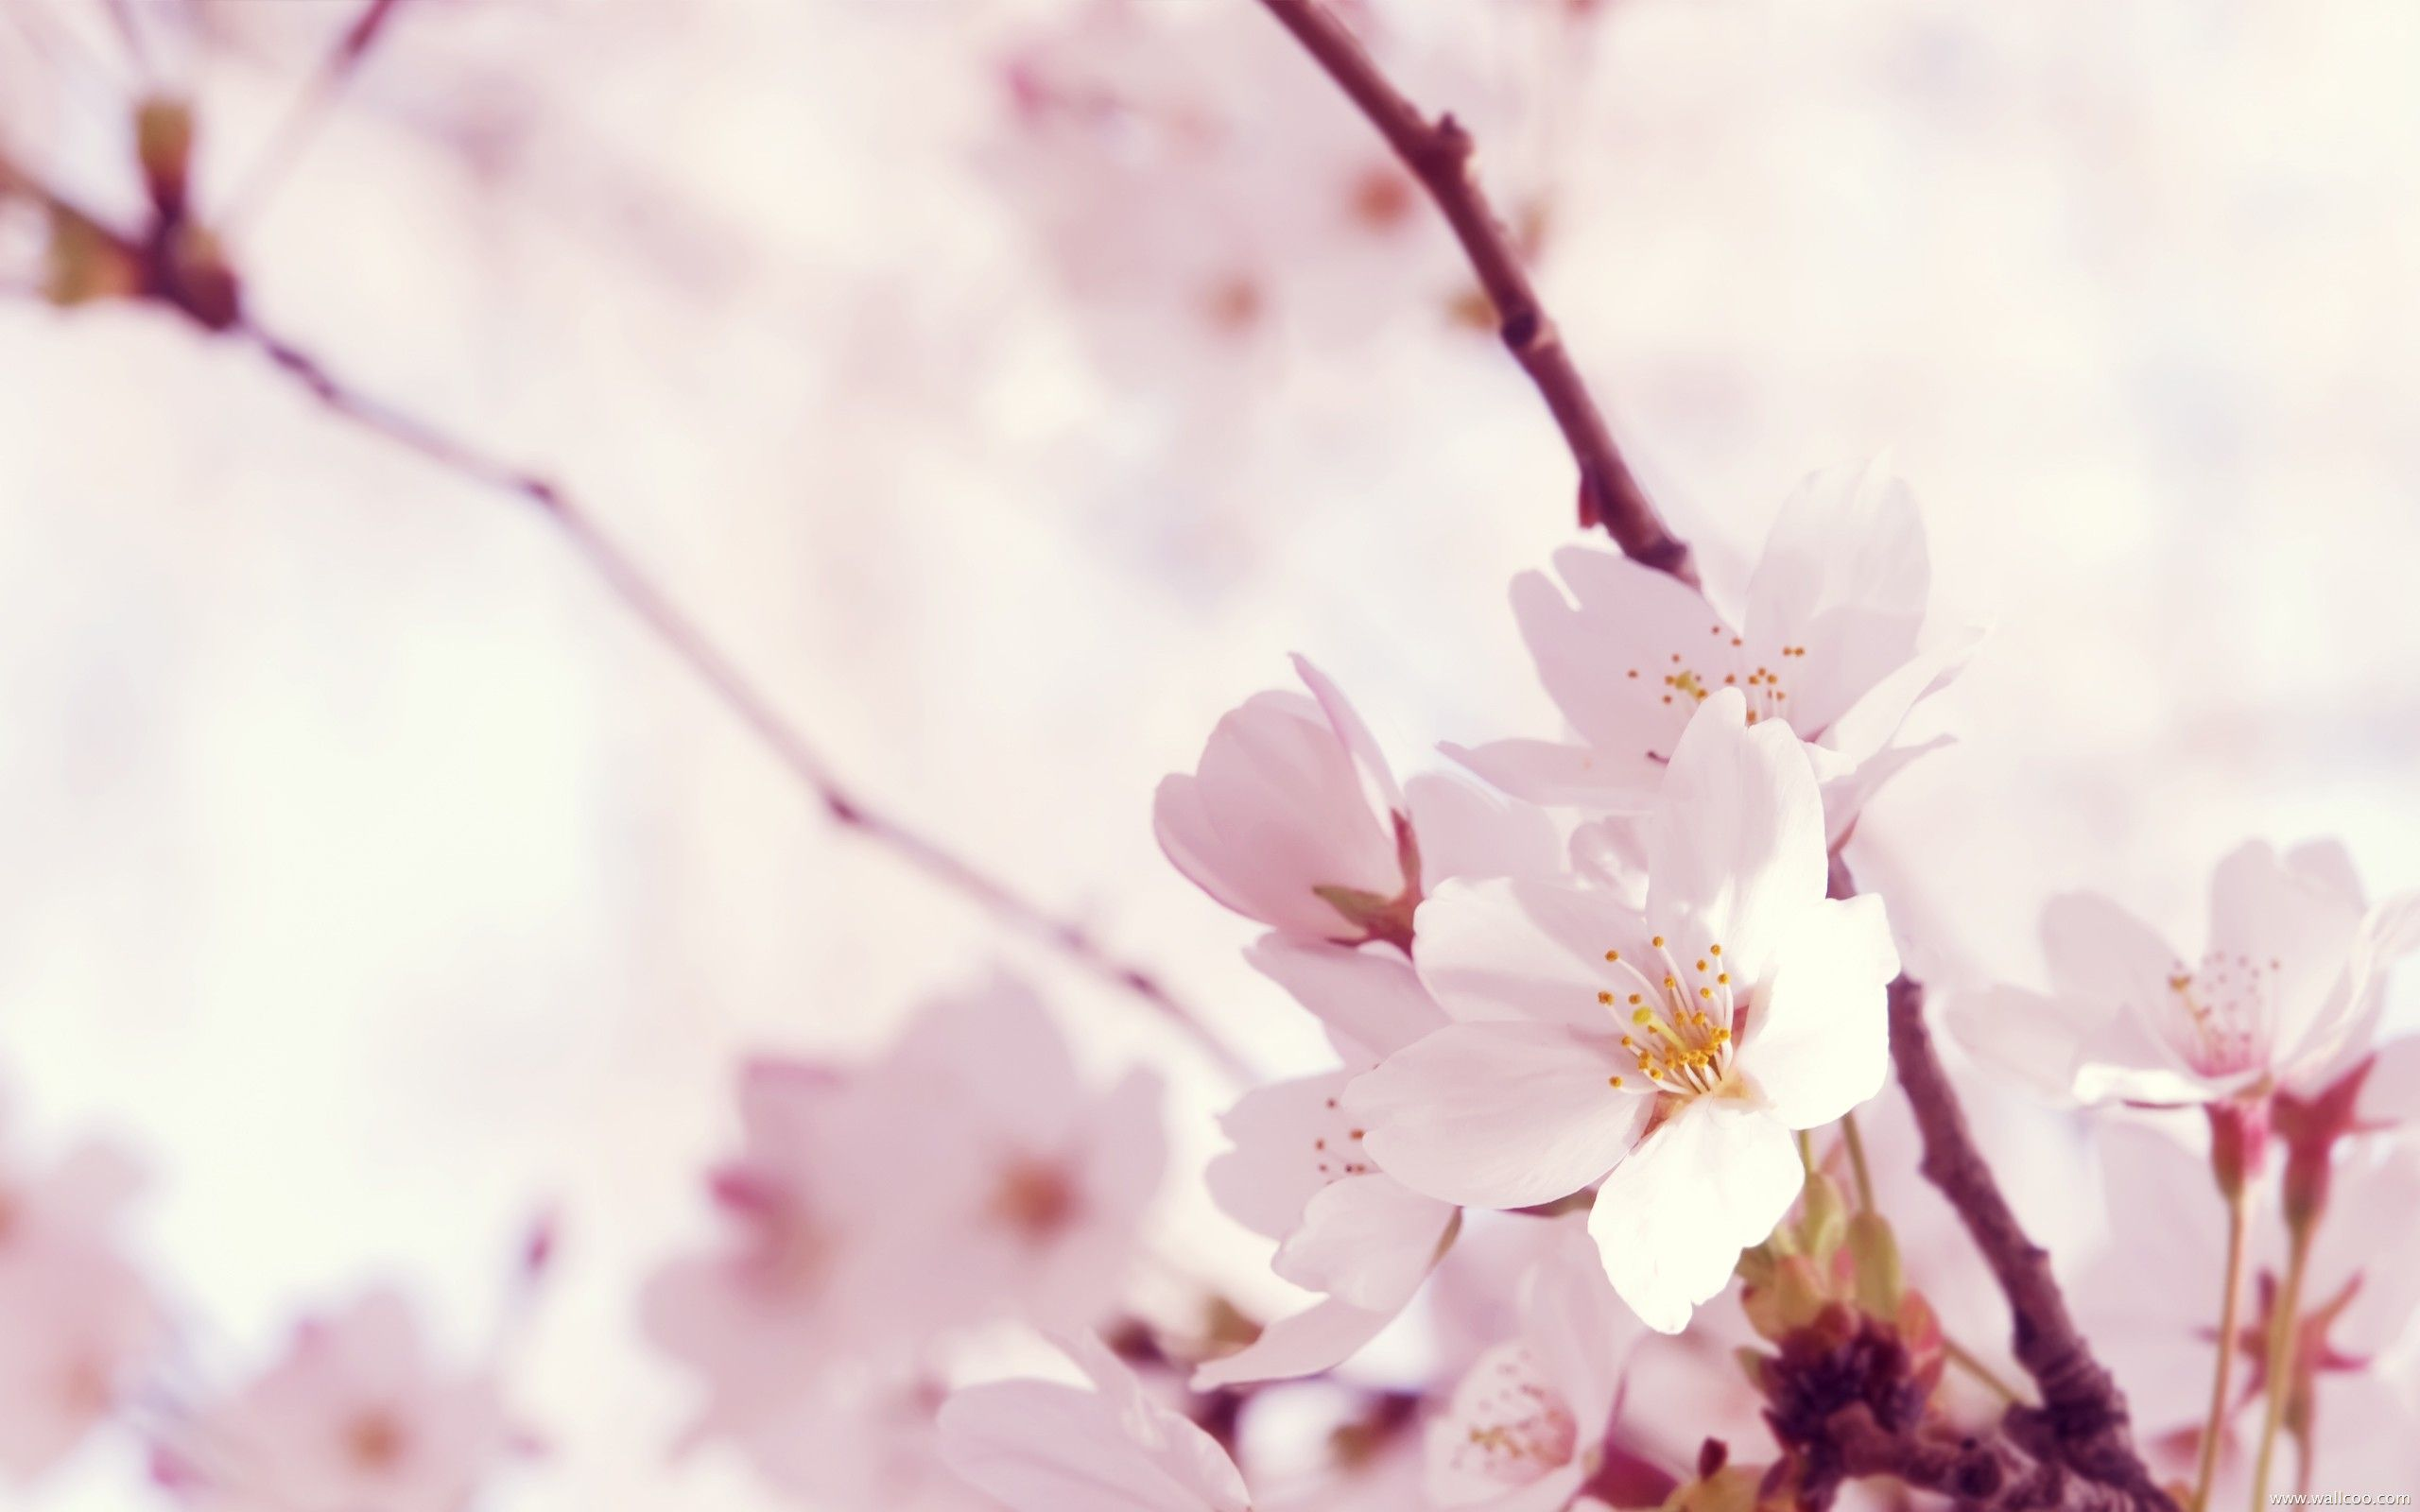 sakura flower image wallpaper | 3D-HD Wallpaper | Pinterest | Flower ... for Light Pink Flower Wallpaper  174mzq